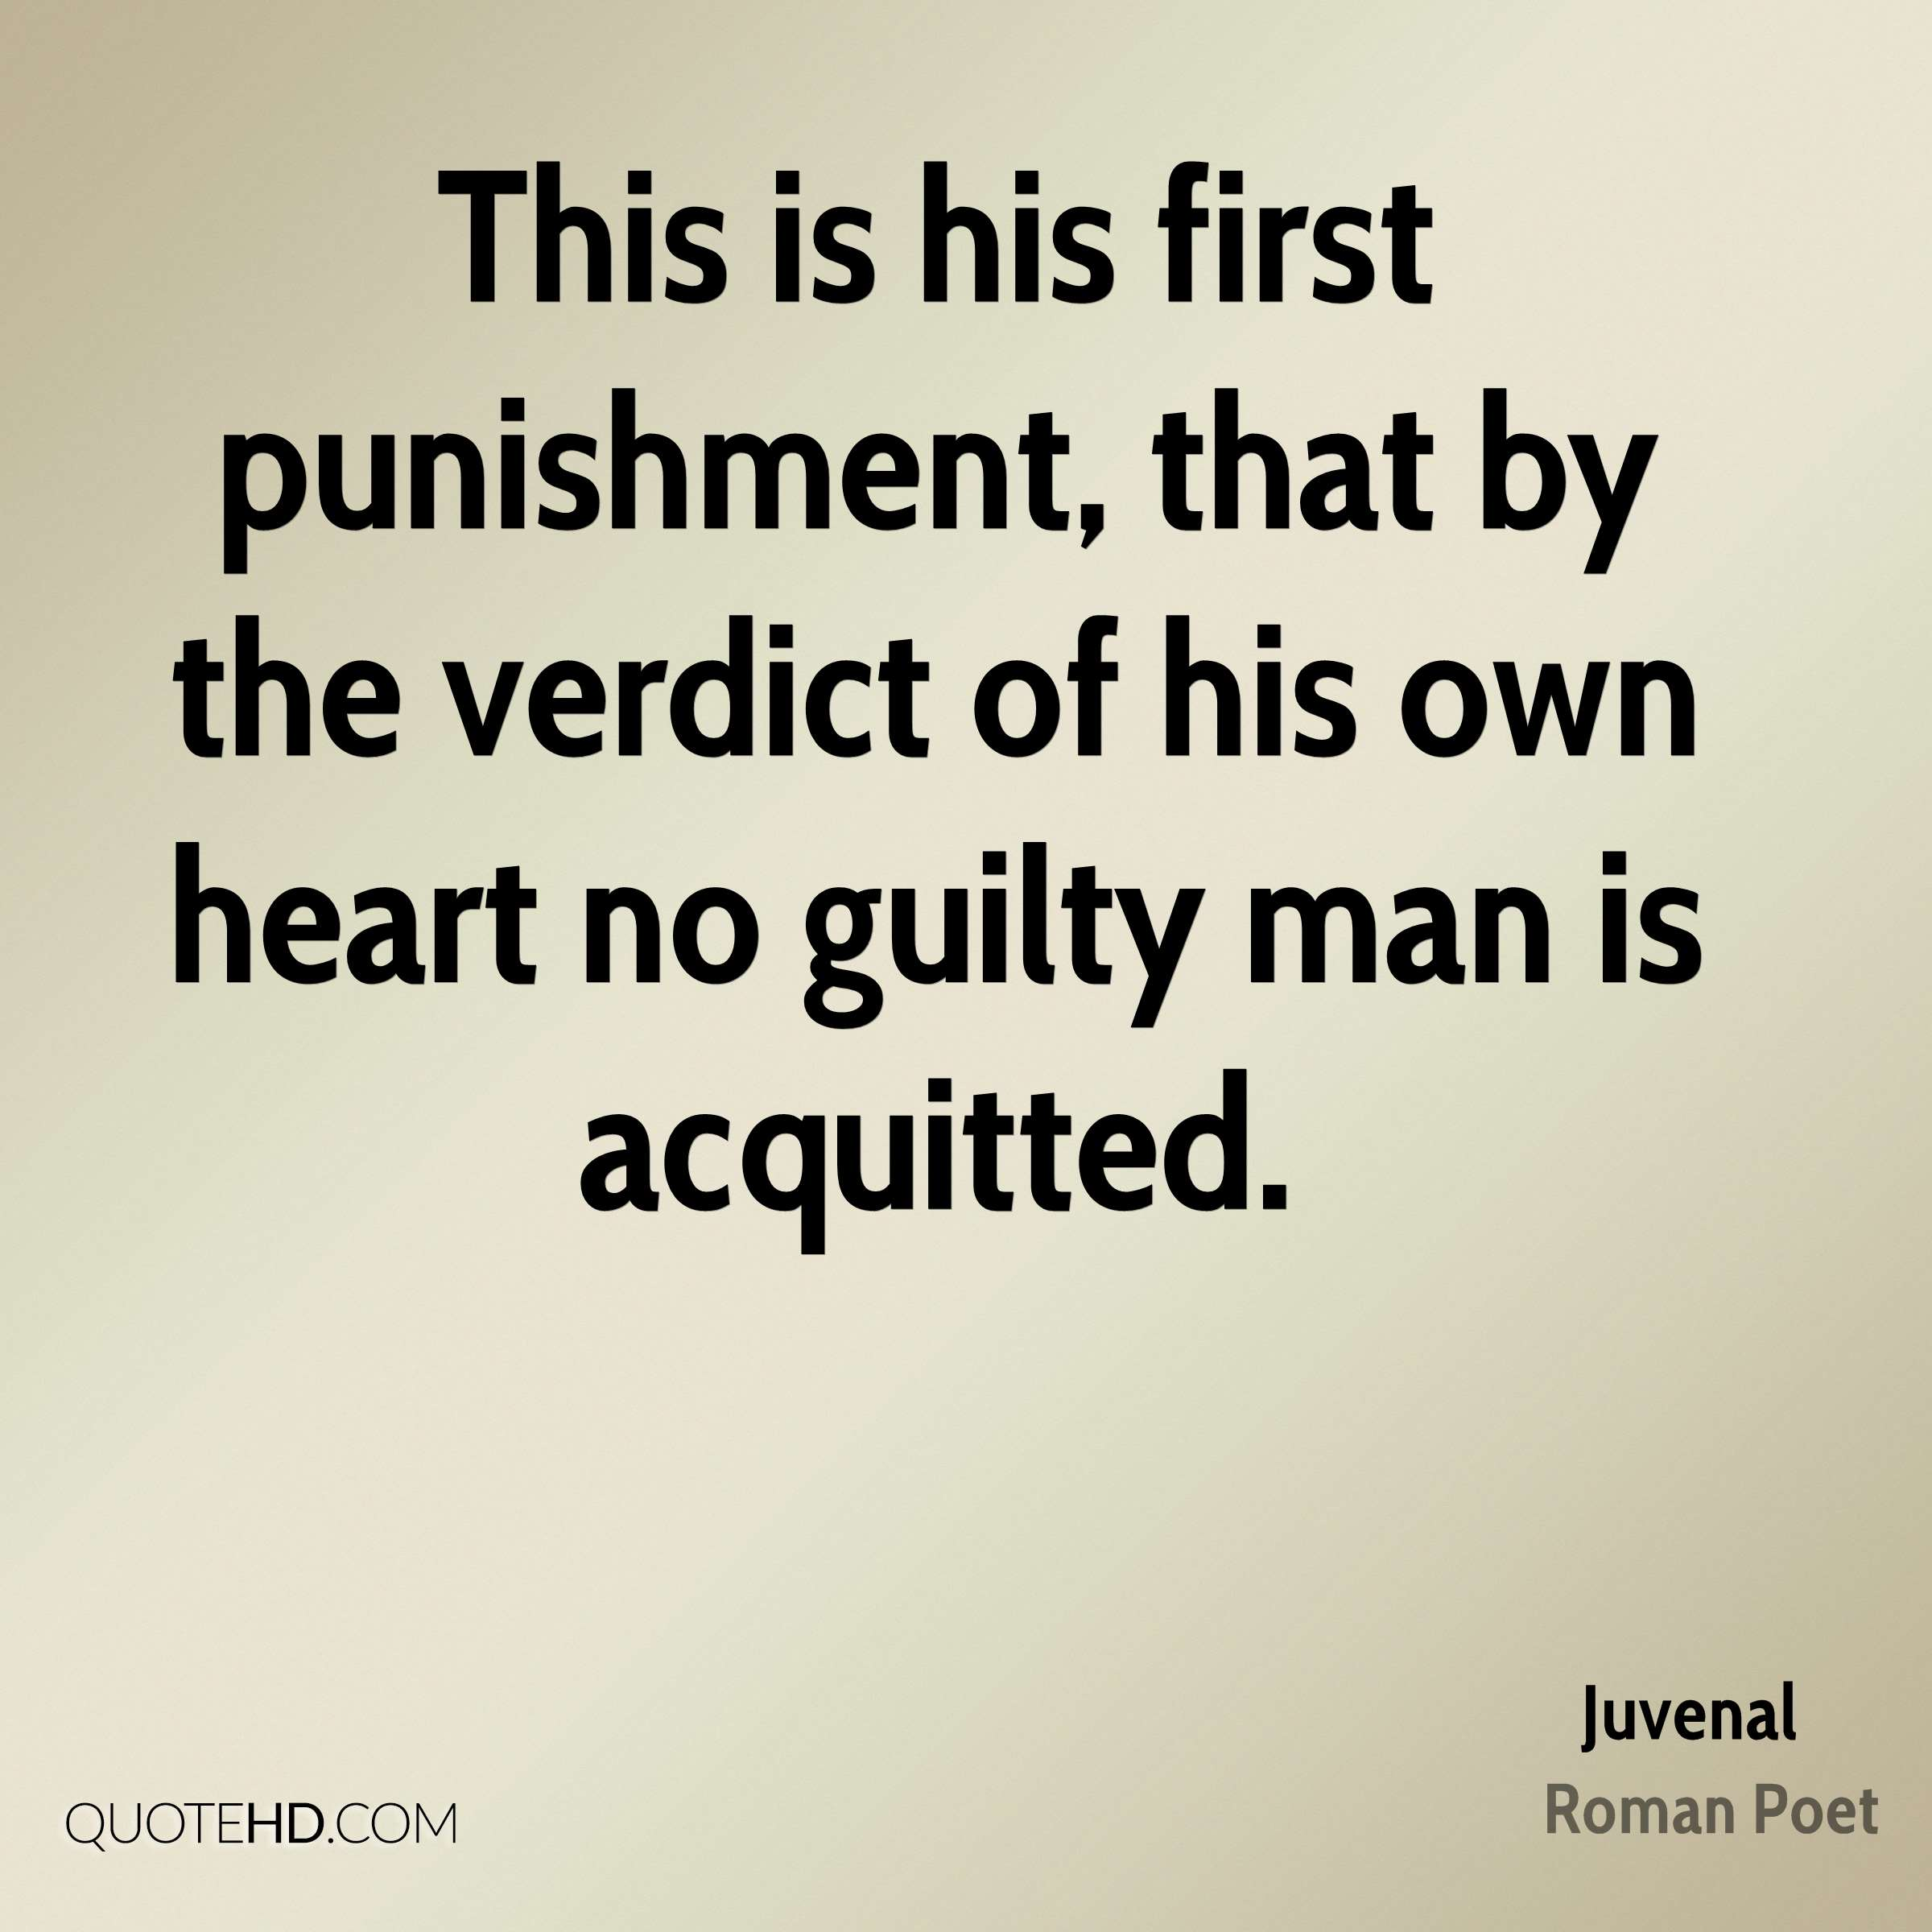 This is his first punishment, that by the verdict of his own heart no guilty man is acquitted.